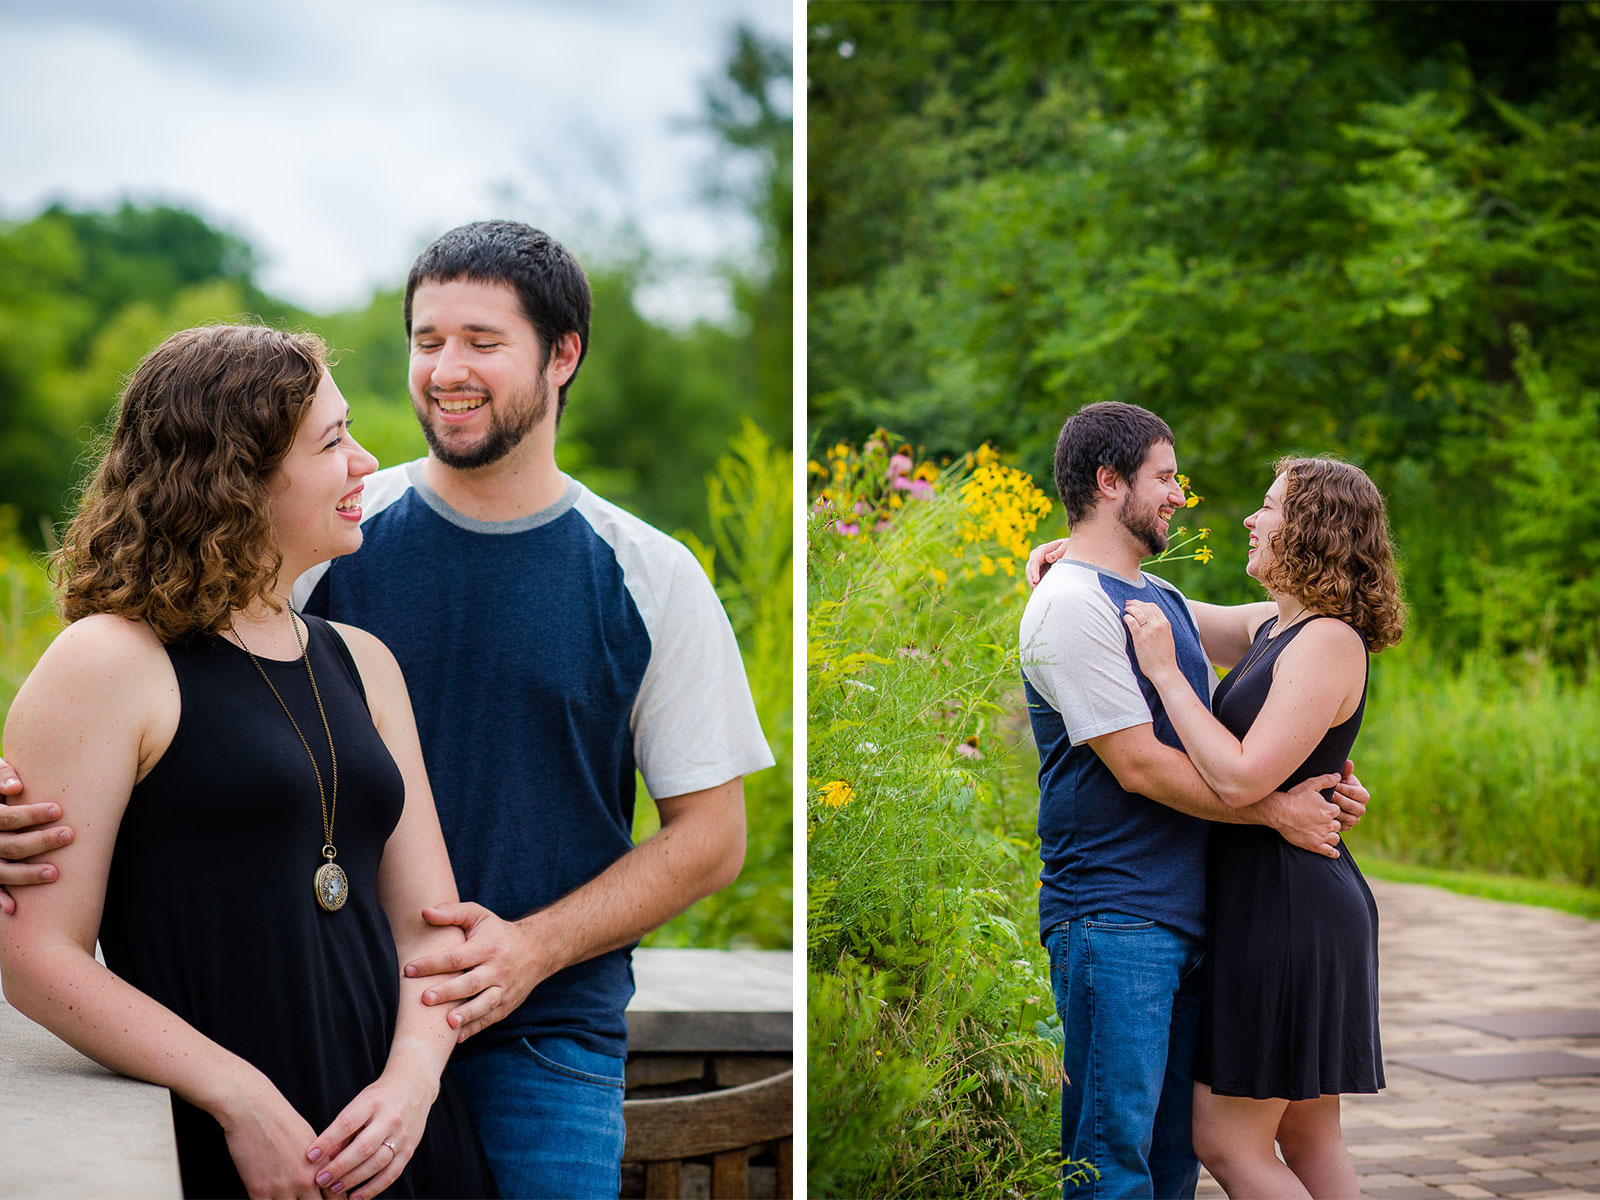 Eric_and_Christy_Photography_Blog_Engagement_Andrea_Clint-3-4